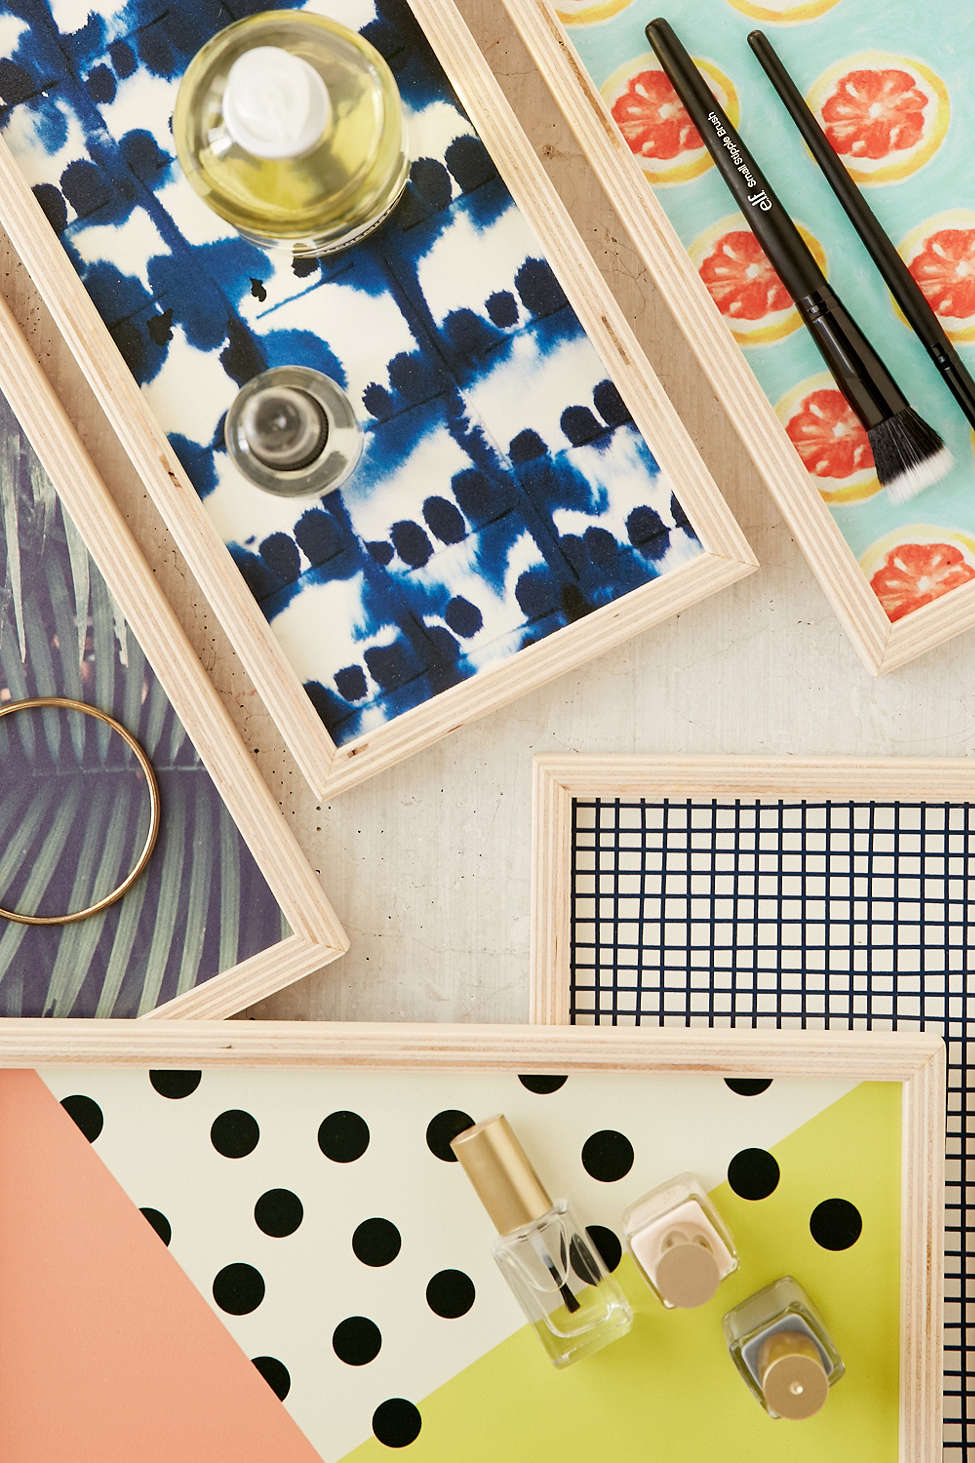 Trendy trays from Urban Outfitters